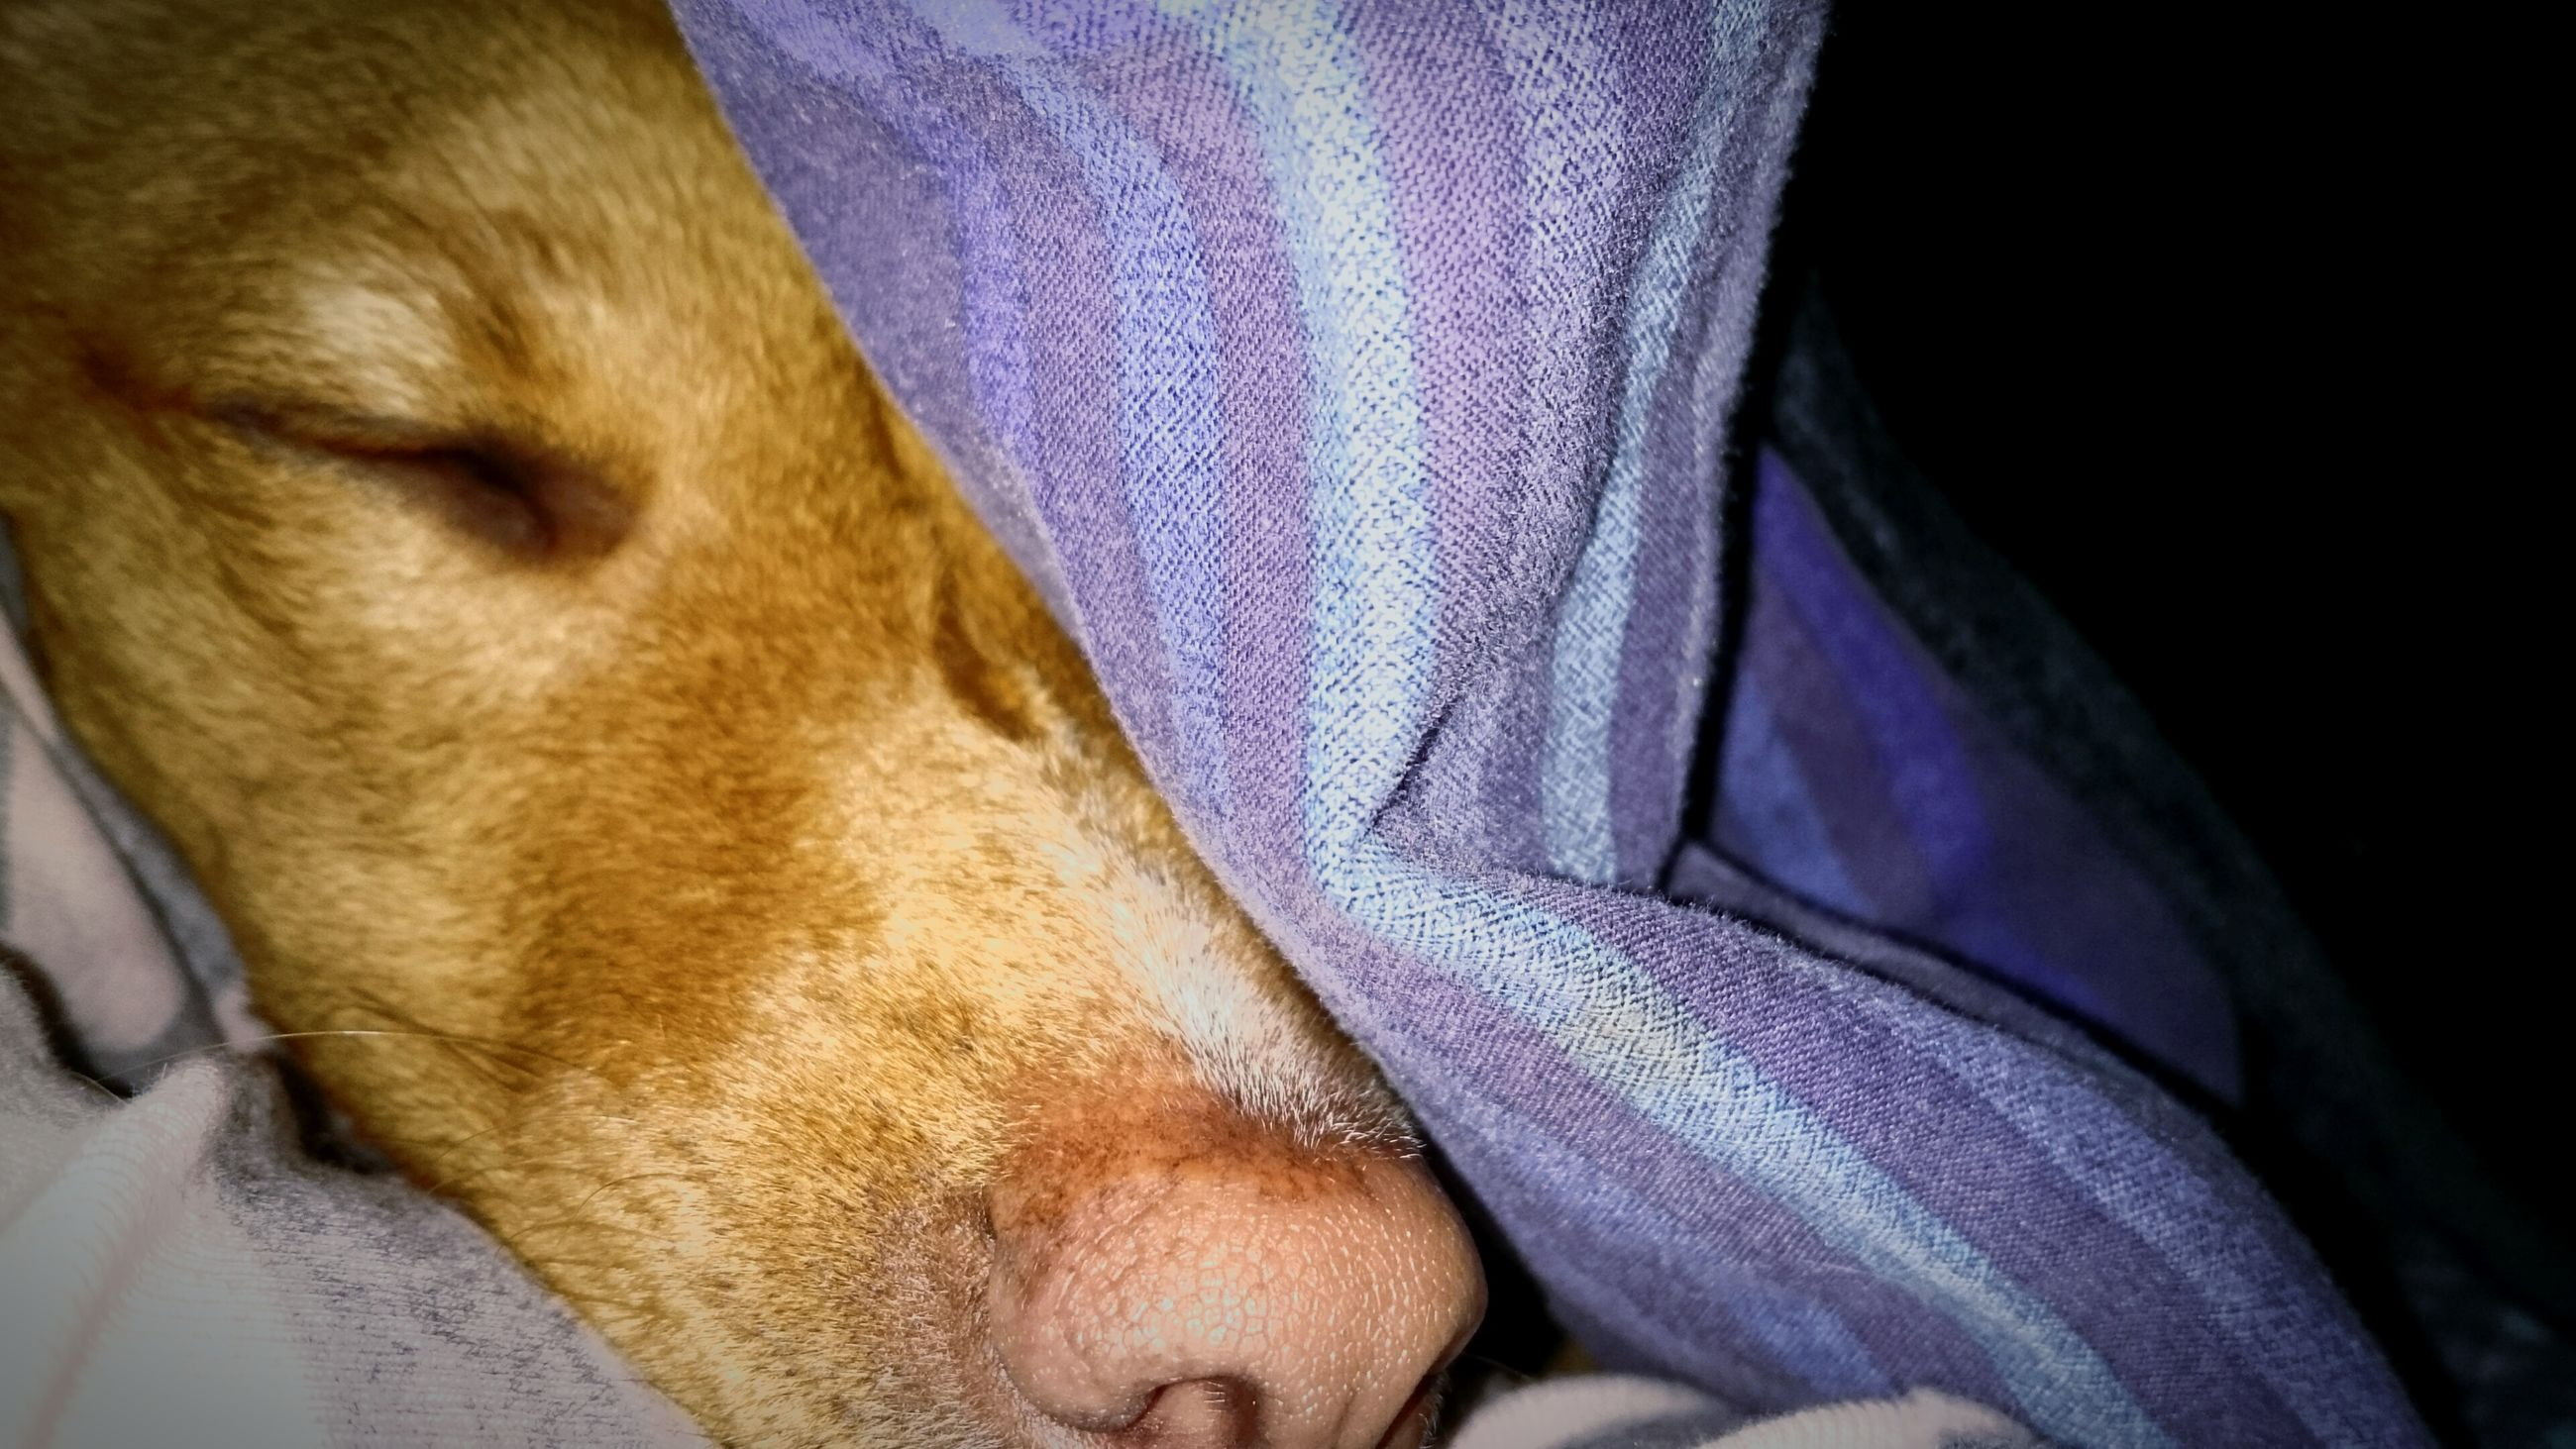 domestic animals, pets, indoors, one animal, animal themes, mammal, sleeping, dog, bed, relaxation, resting, lying down, close-up, eyes closed, blanket, animal head, home interior, comfortable